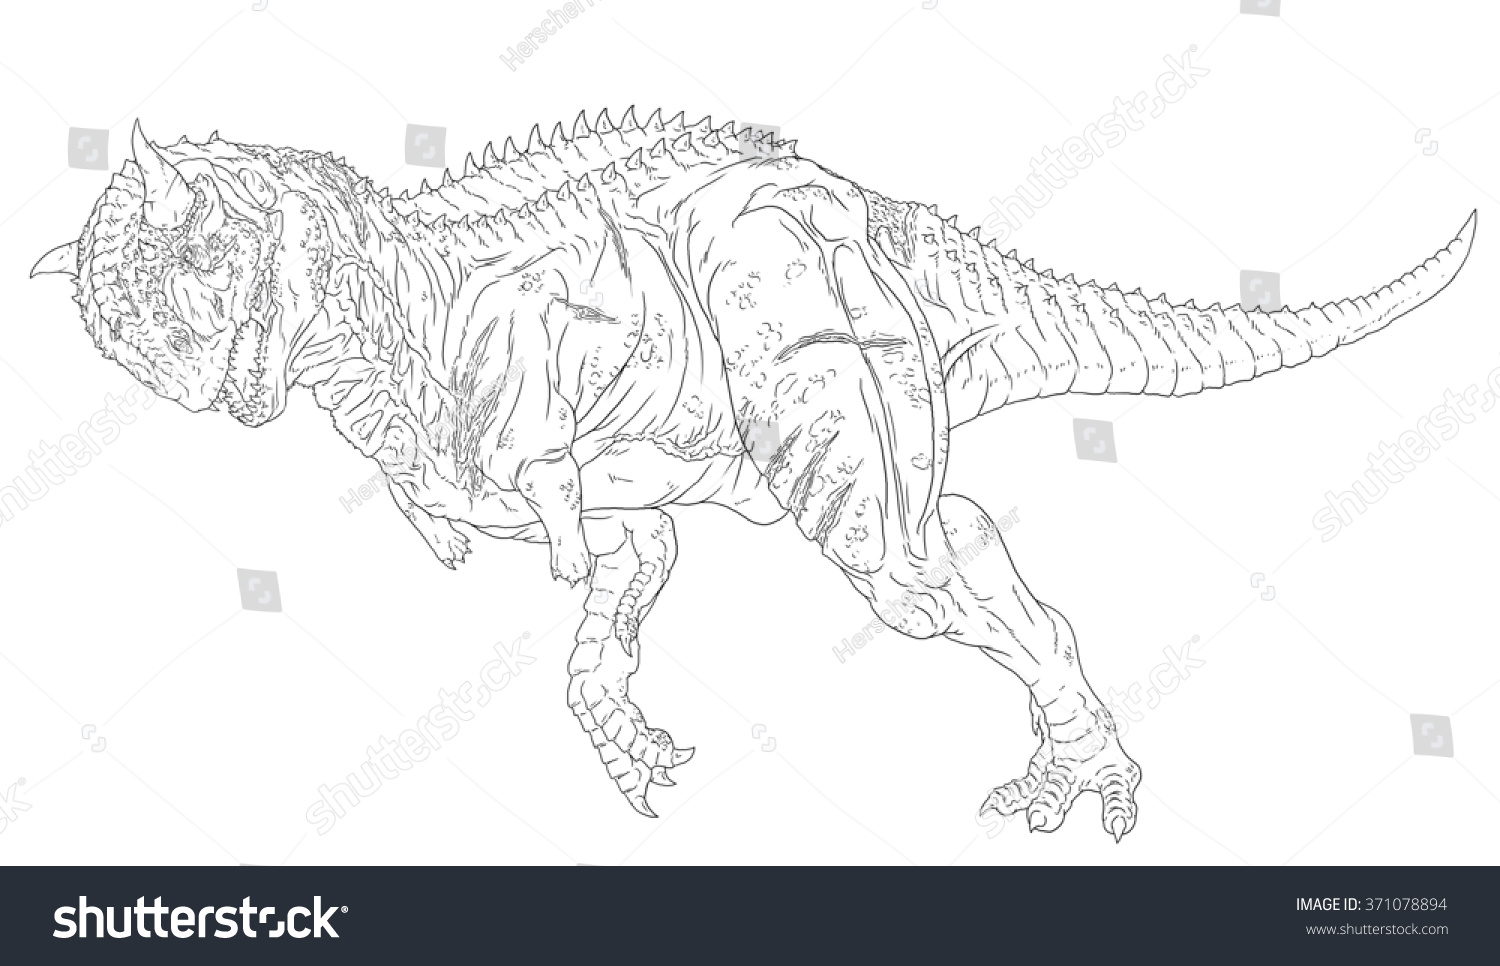 Carnotaurus line drawing coloring books stock illustration for Carcharodontosaurus coloring page